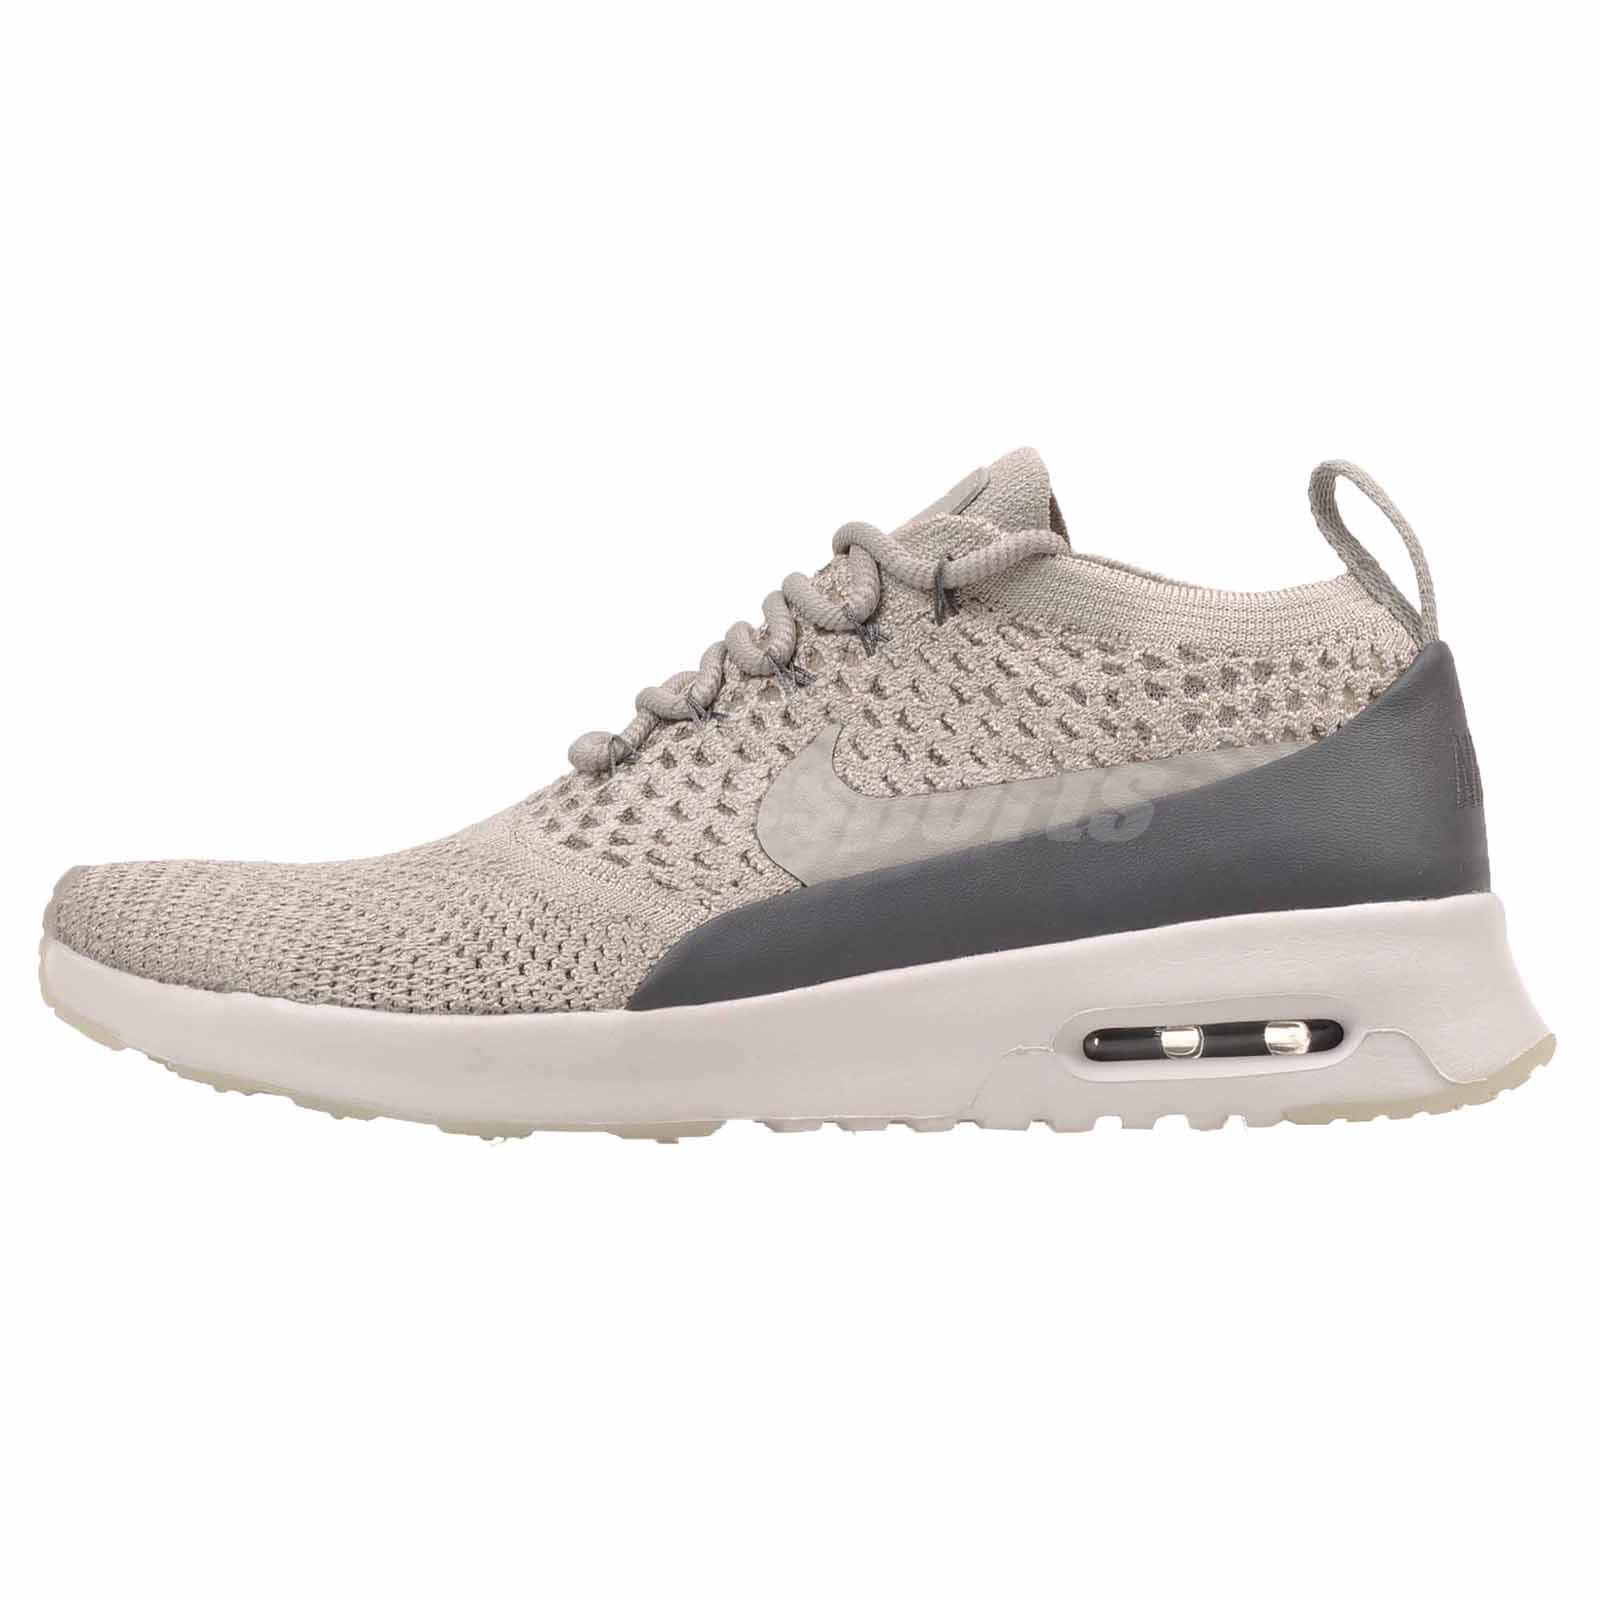 680def7de9 Nike W Nike Air Max Thea Ultra FK Running Womens Shoes Pale Grey 881175-005